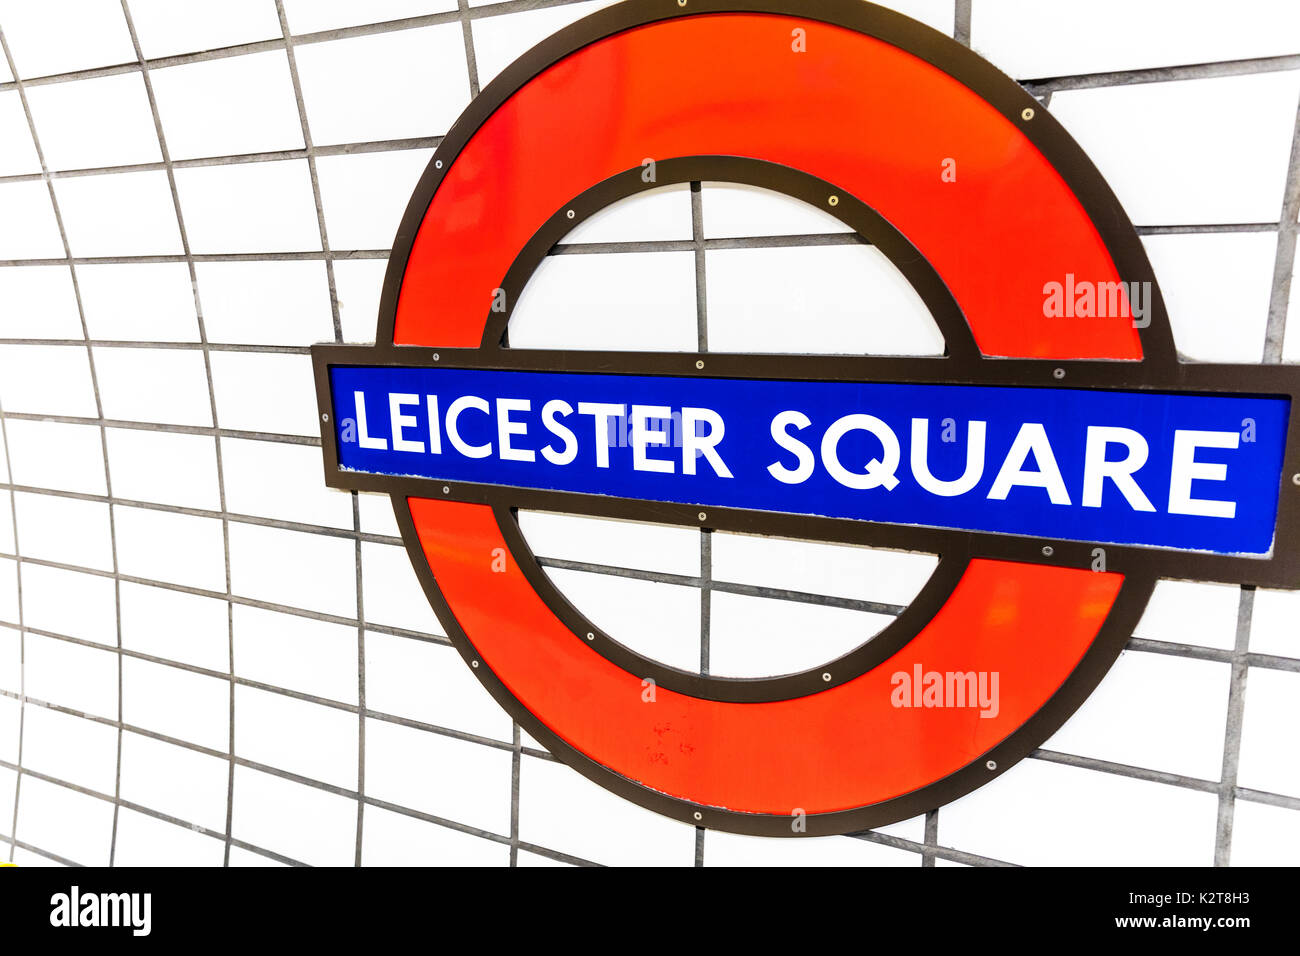 London Underground sign, London Underground Leicester Square sign, Leicester Square underground station sign, Leicester Square underground station - Stock Image